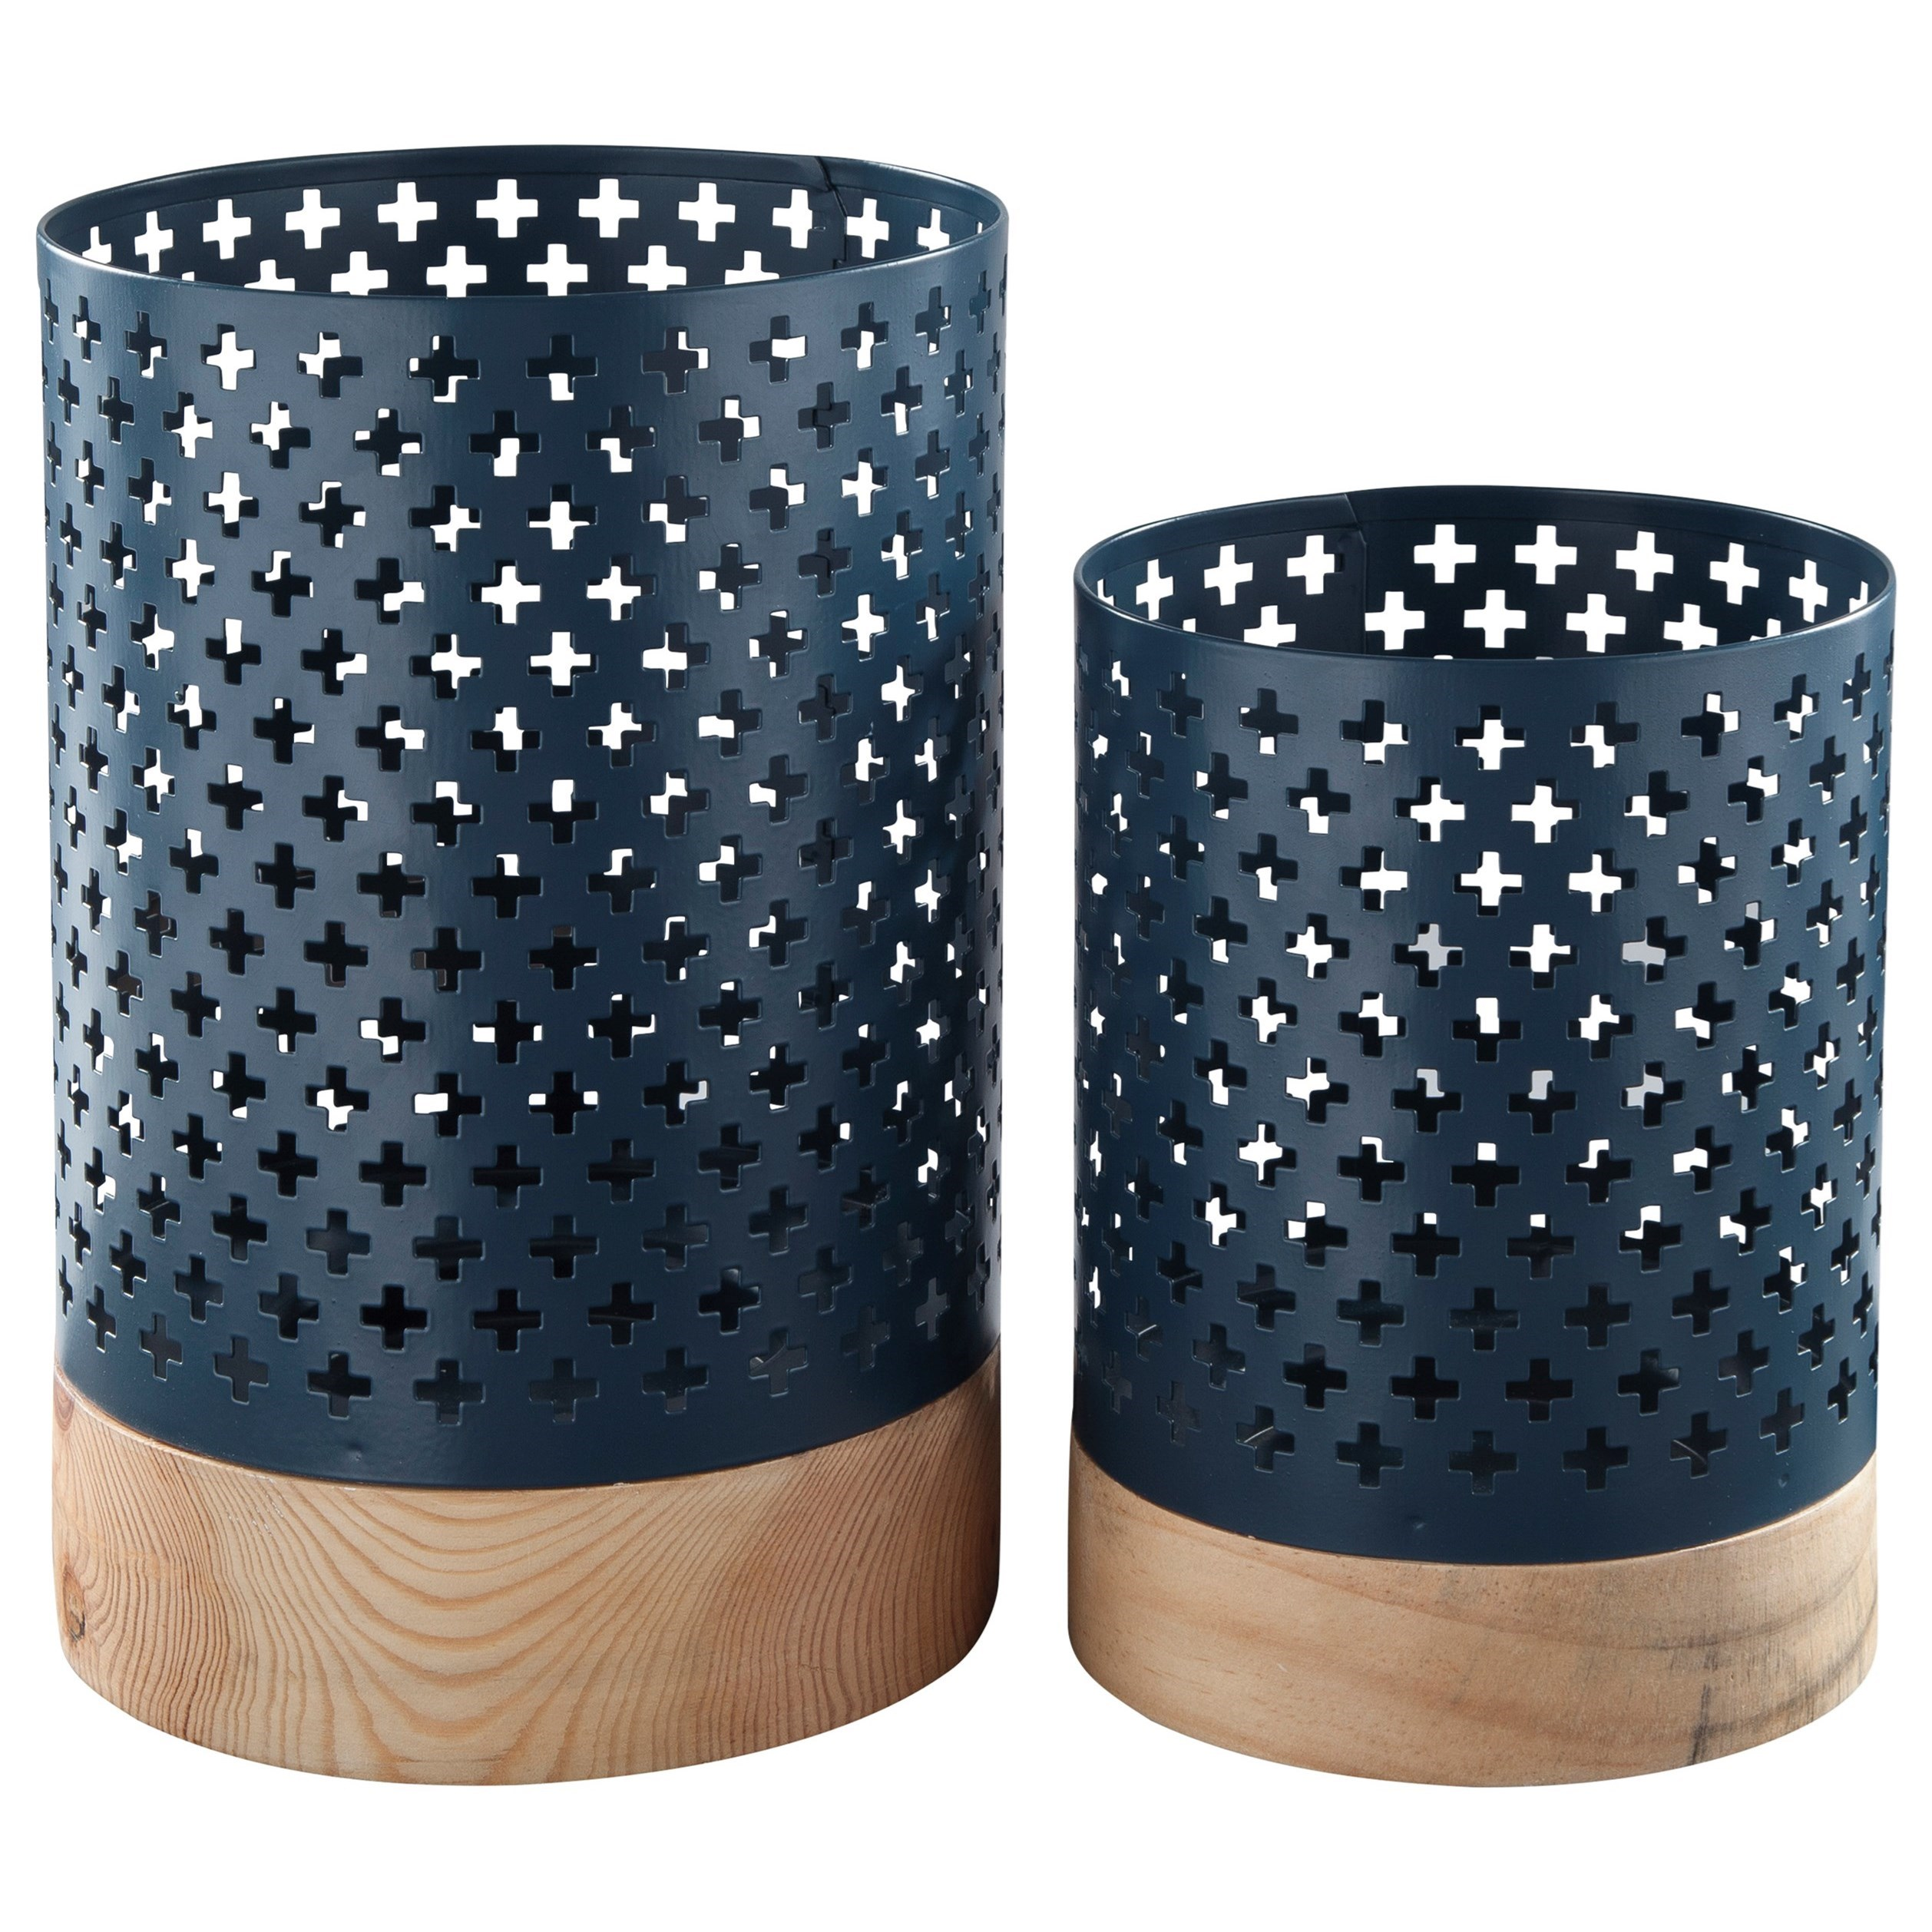 Signature Design by Ashley Accents Daichi - Navy Candle Holders (Set of 2) - Item Number: A2000168C